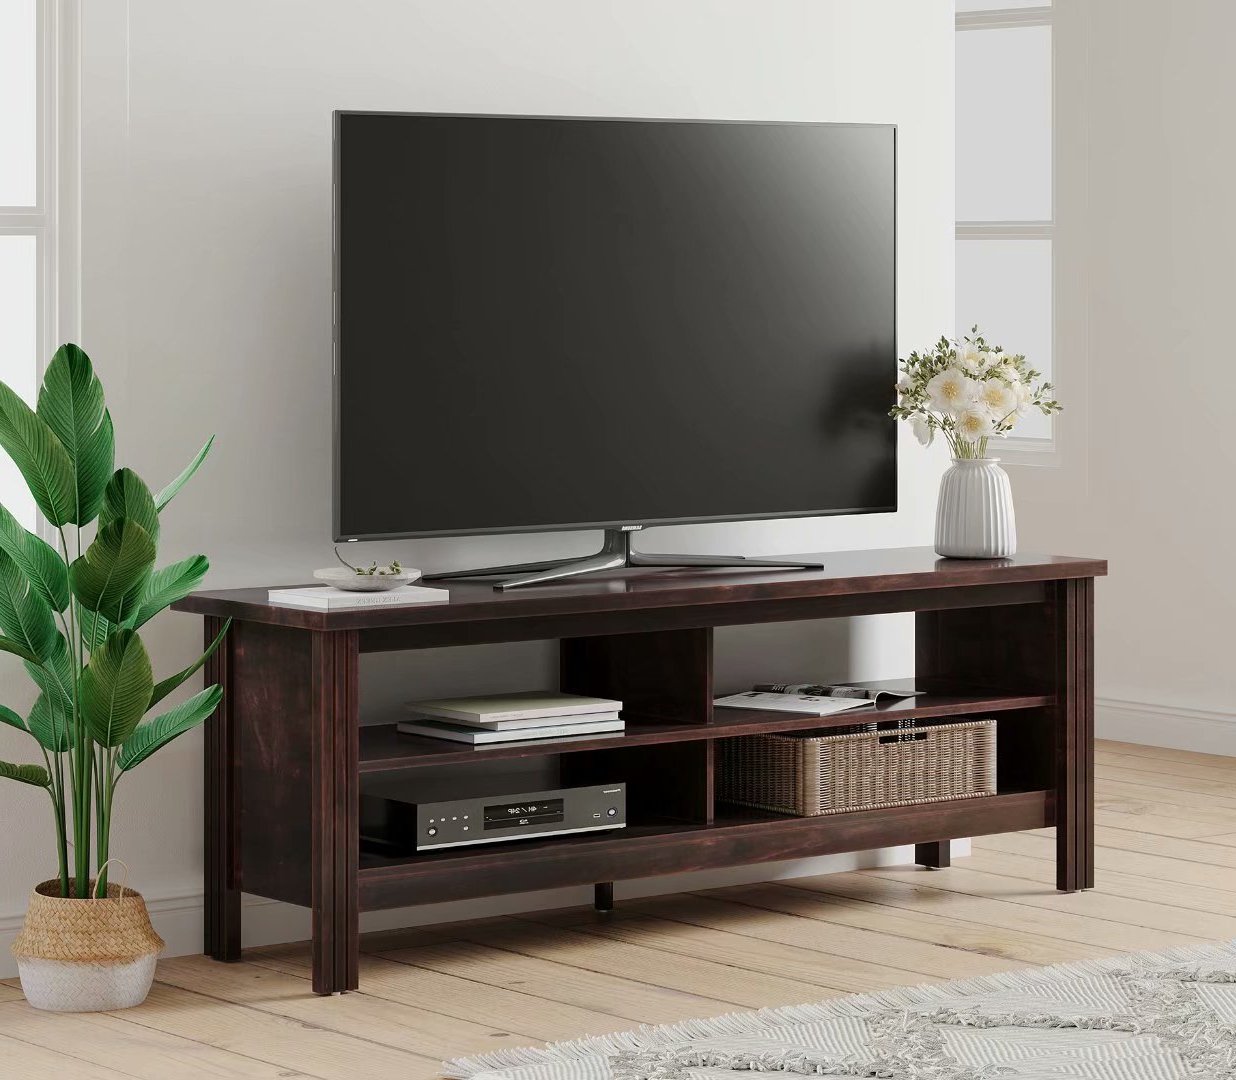 """2019 Metin Tv Stands For Tvs Up To 65"""" Pertaining To Wampat Farmhouse Tv Stand For 65 '' Flat Screen , Wood Tv (View 2 of 20)"""